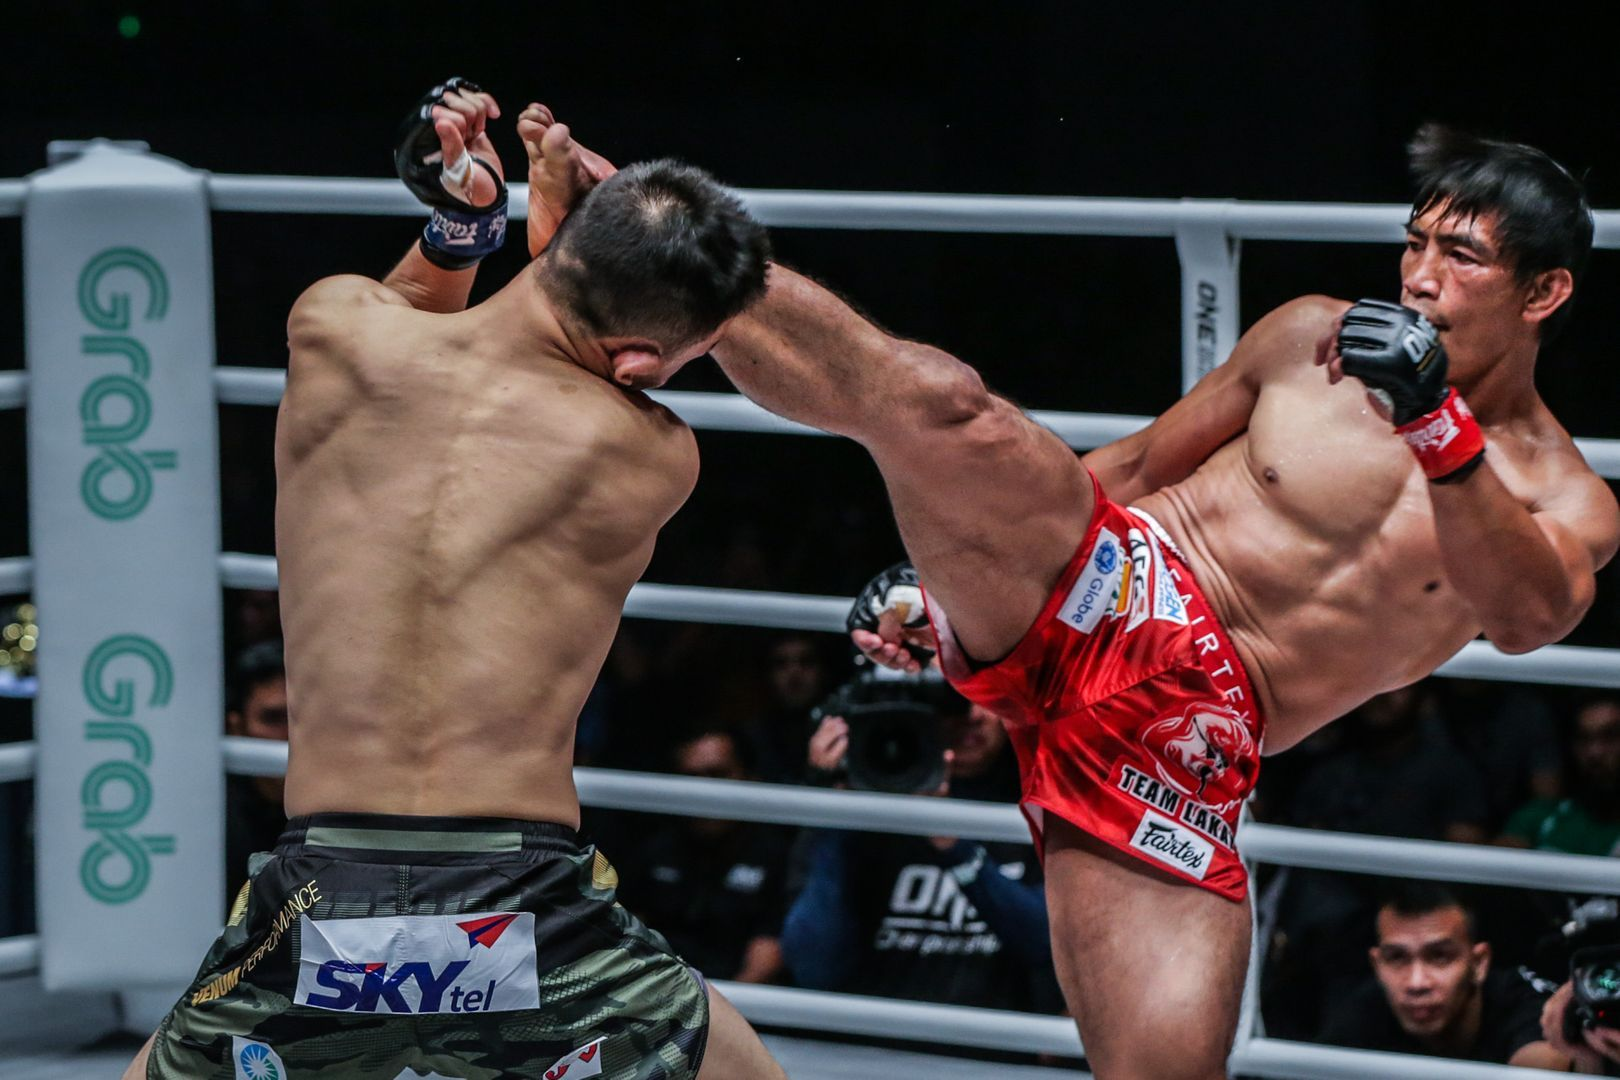 Filipino martial arts icon Eduard Folayang lands a high kick on Amarsanaa Tsogookhuu